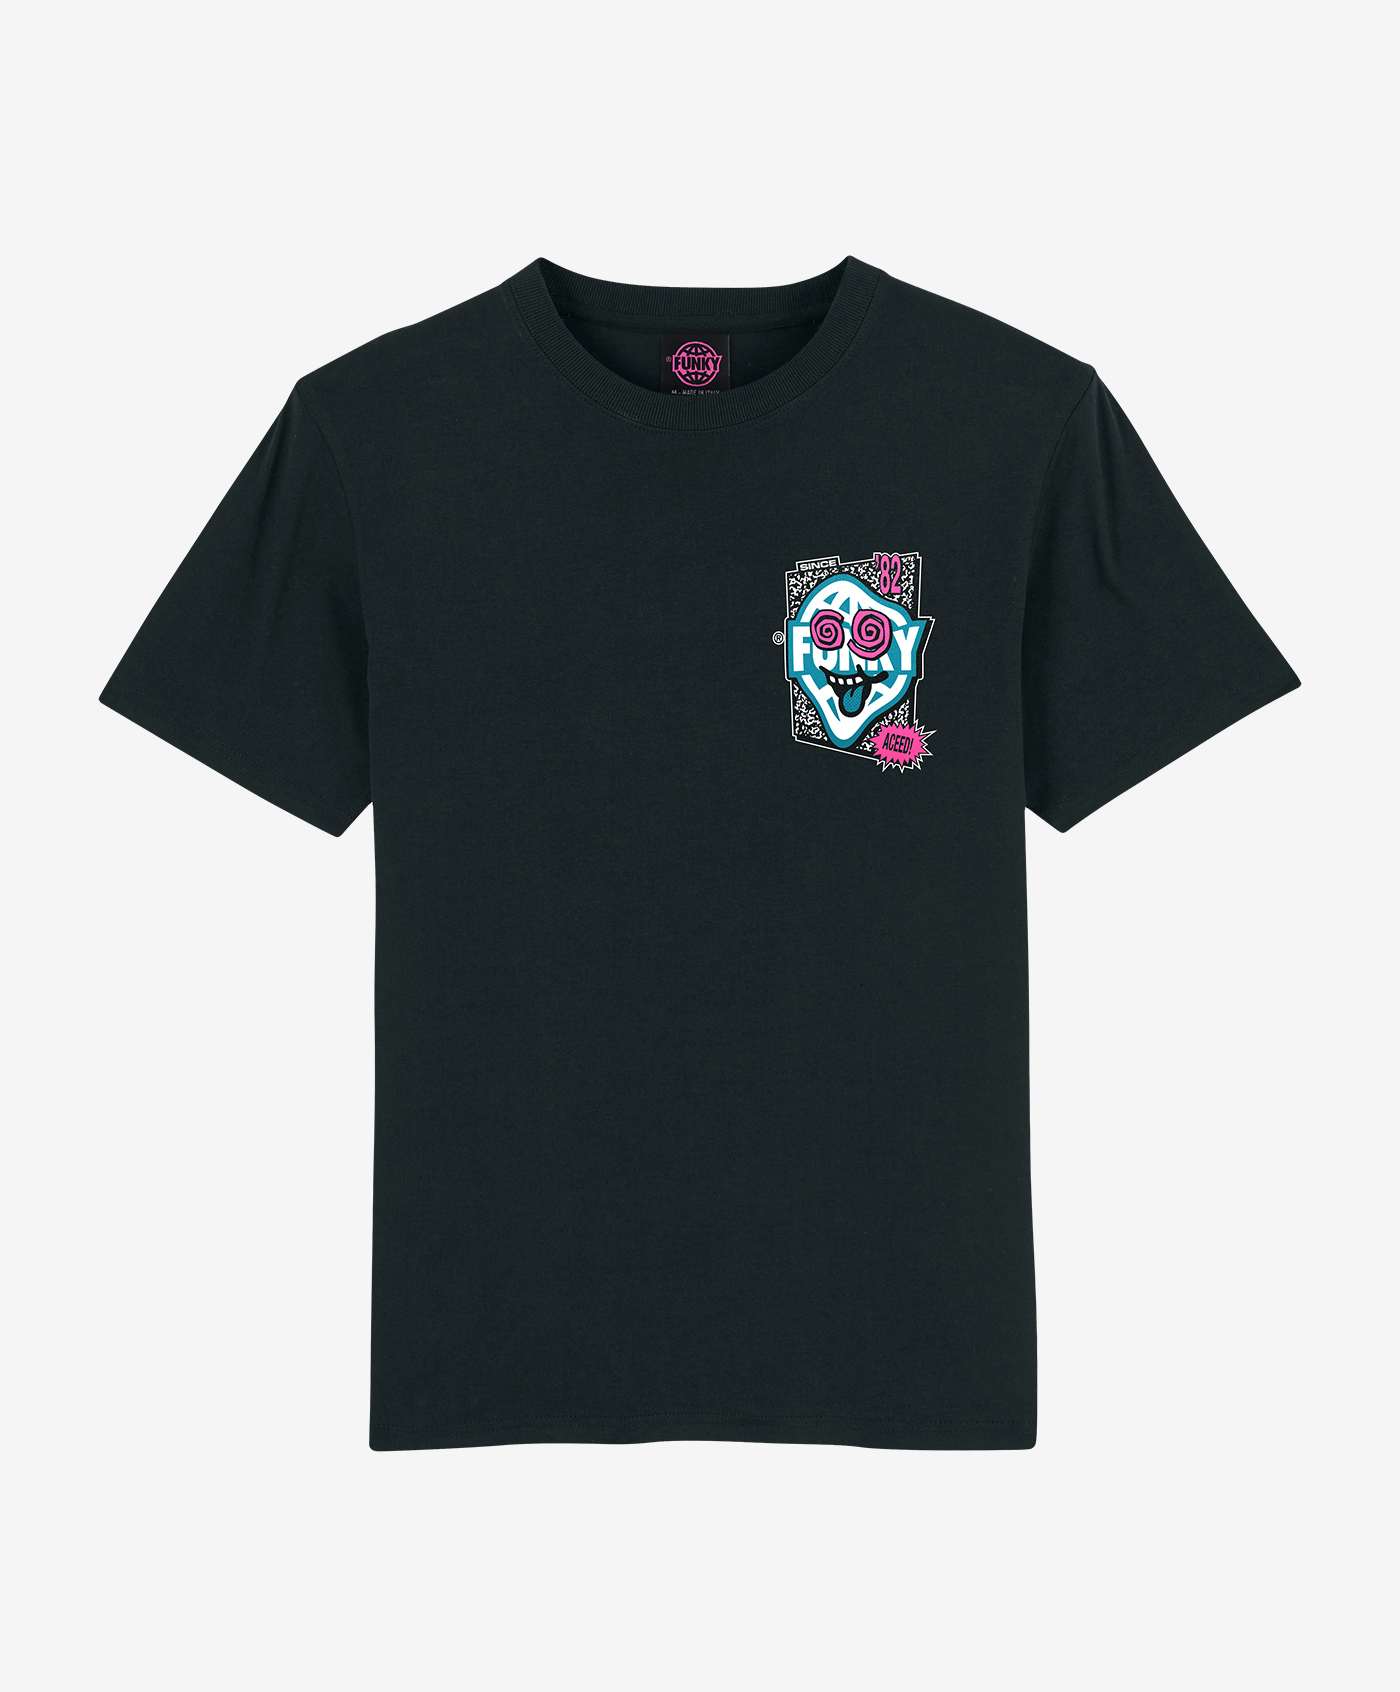 funky aceed tee black front